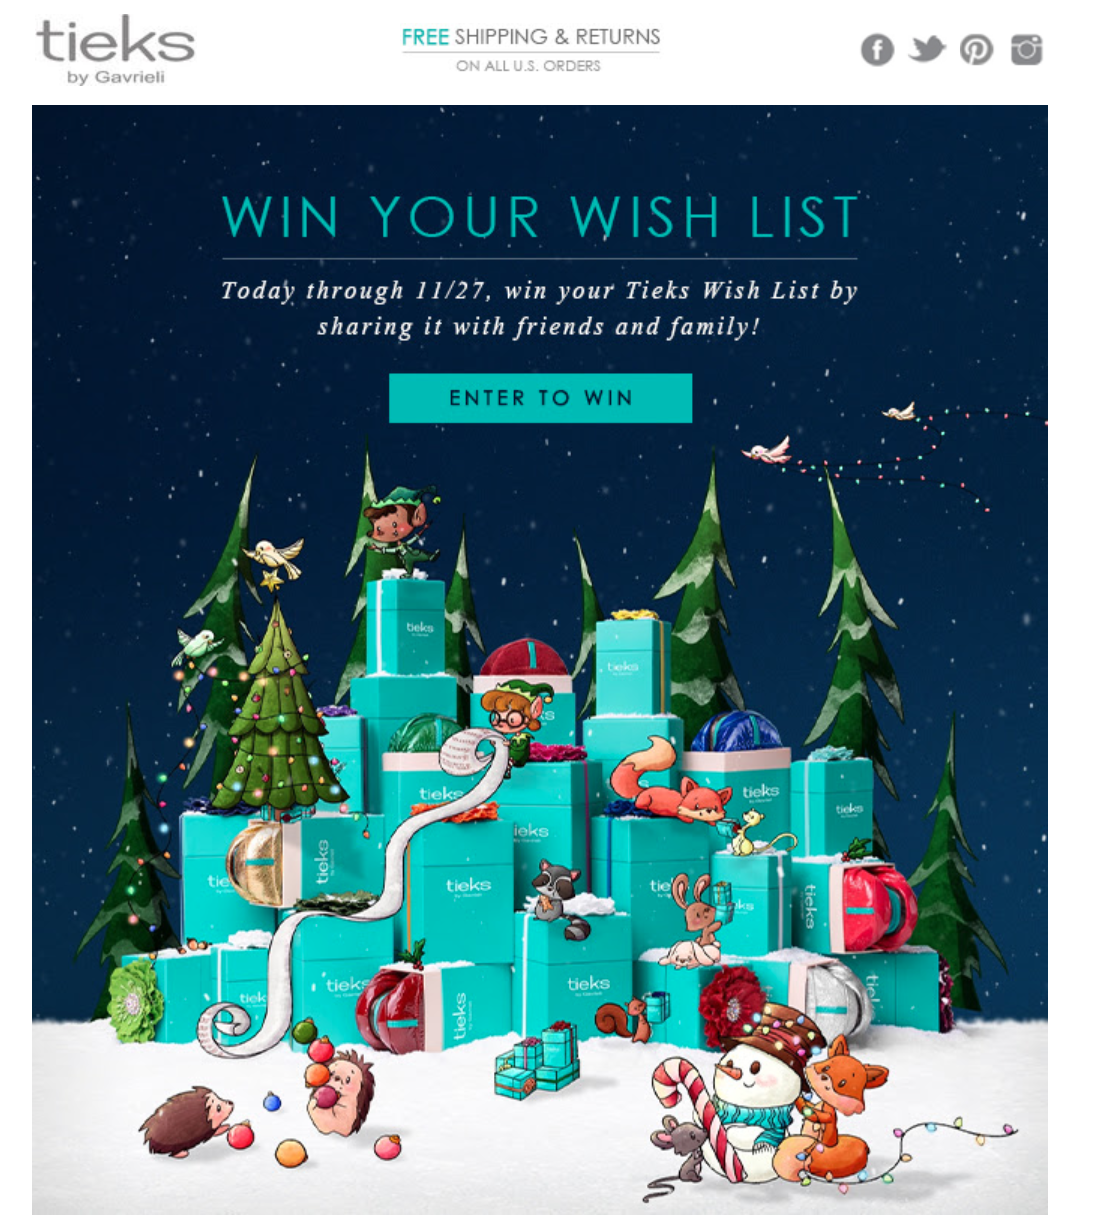 wishlists in emails